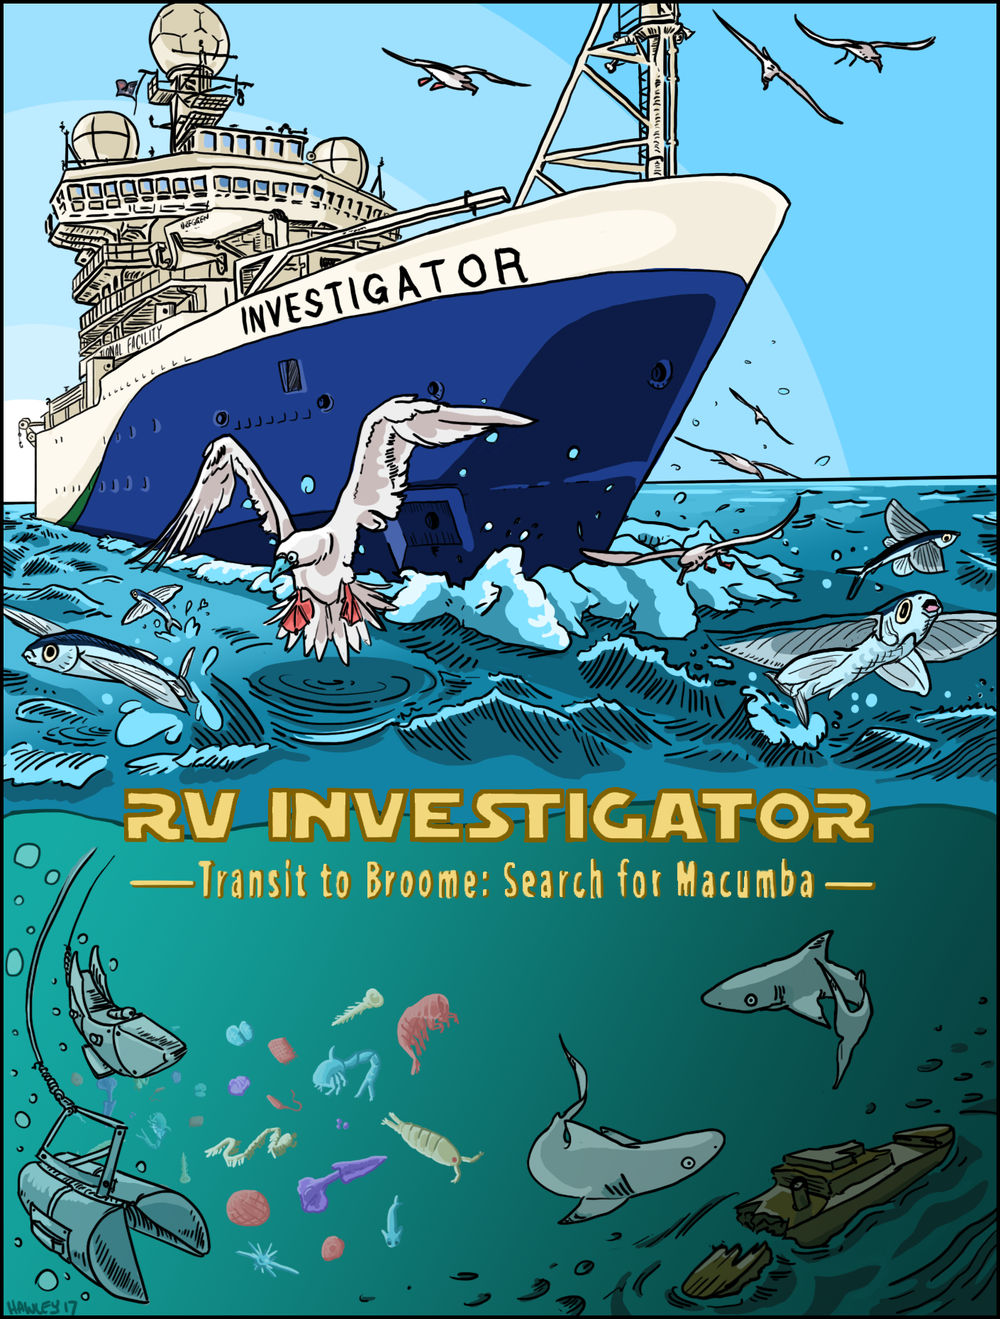 RV Investigator: Search for Macumba